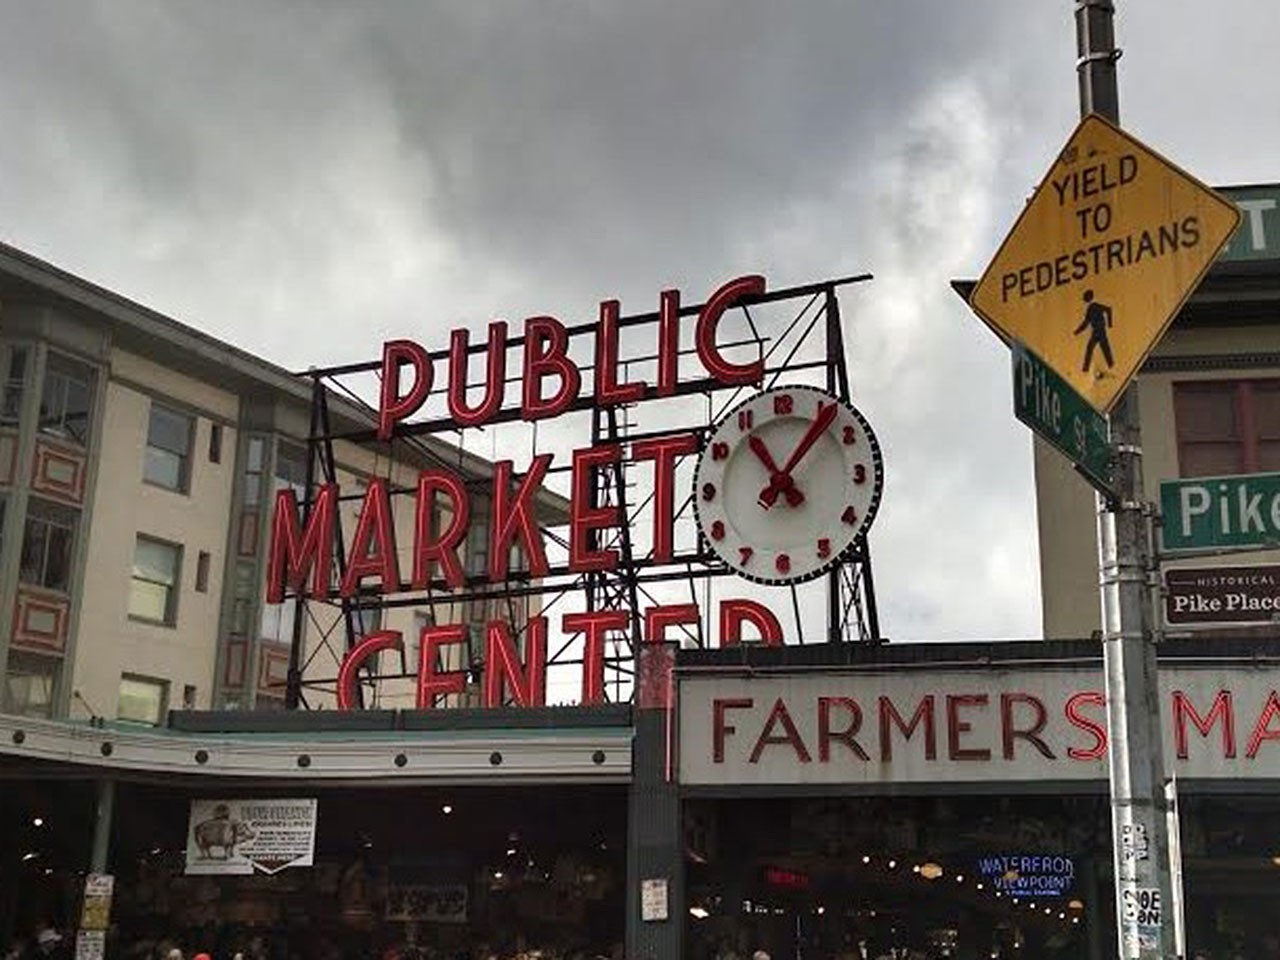 Be a Foodie Tourist at Pike Place